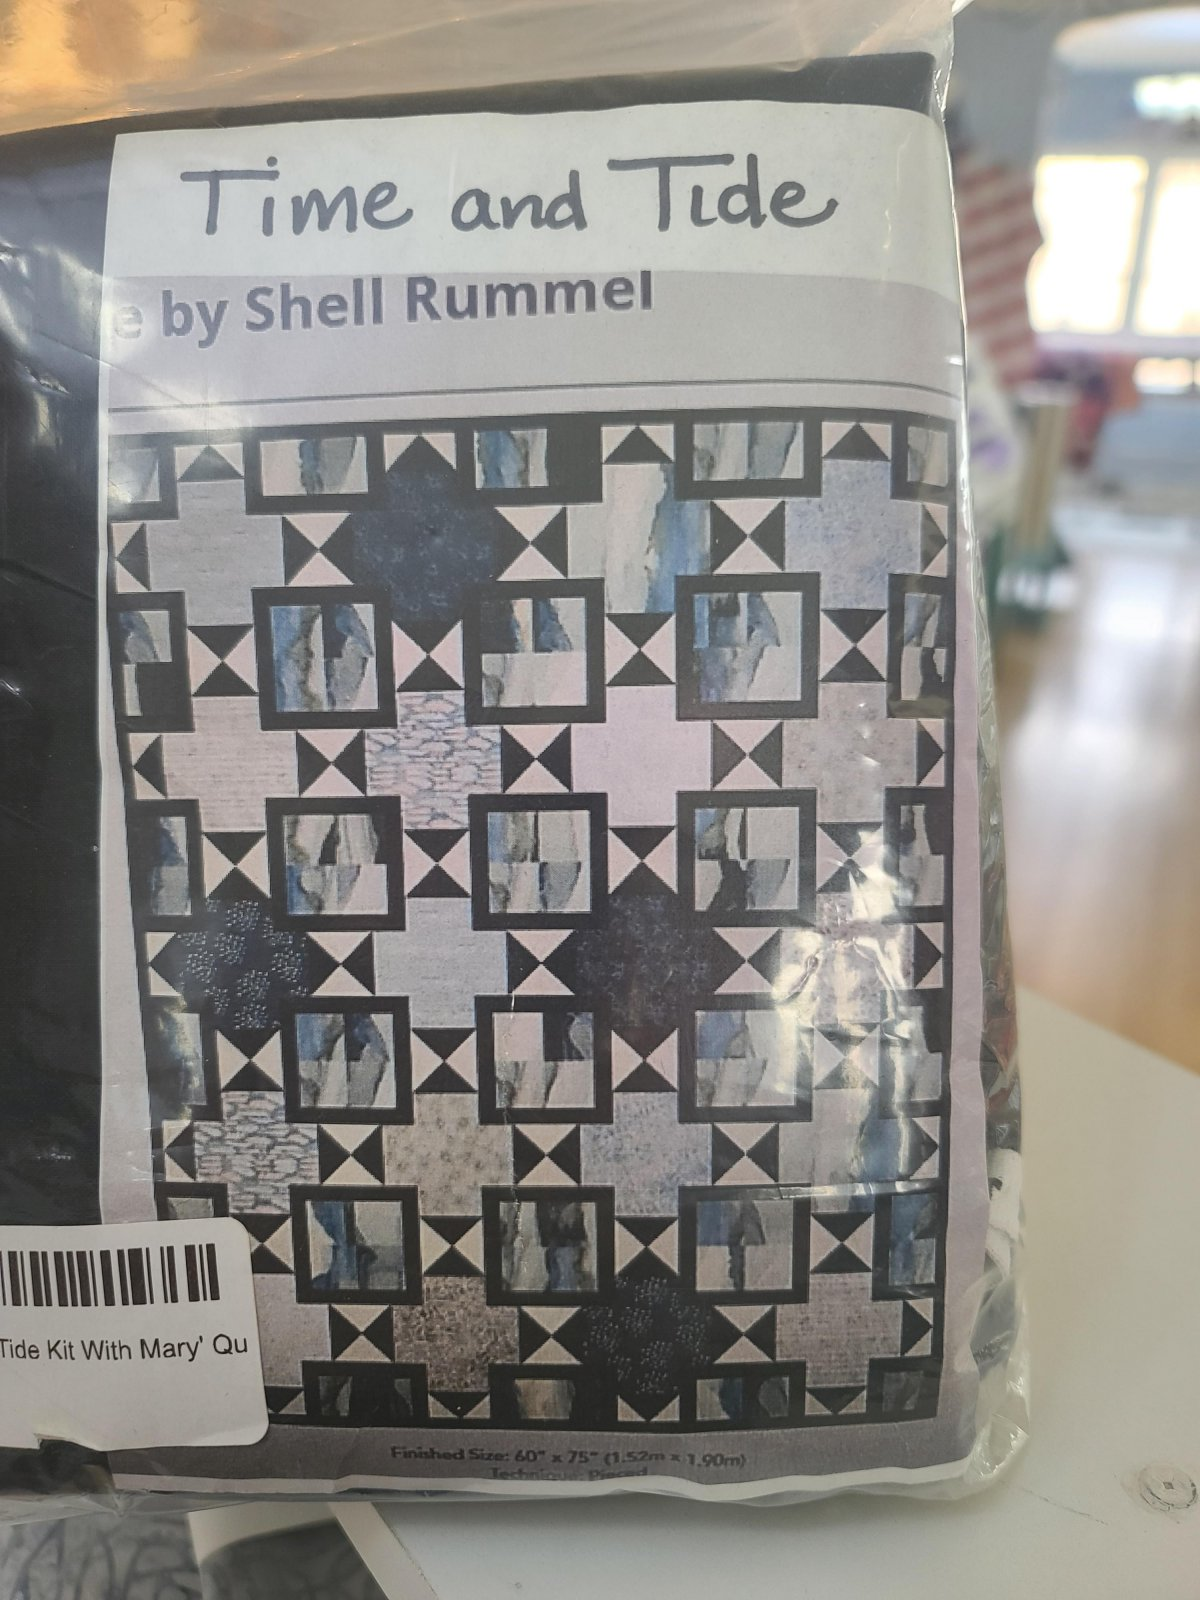 Time and Tide Kit With Mary' Quilt pattern